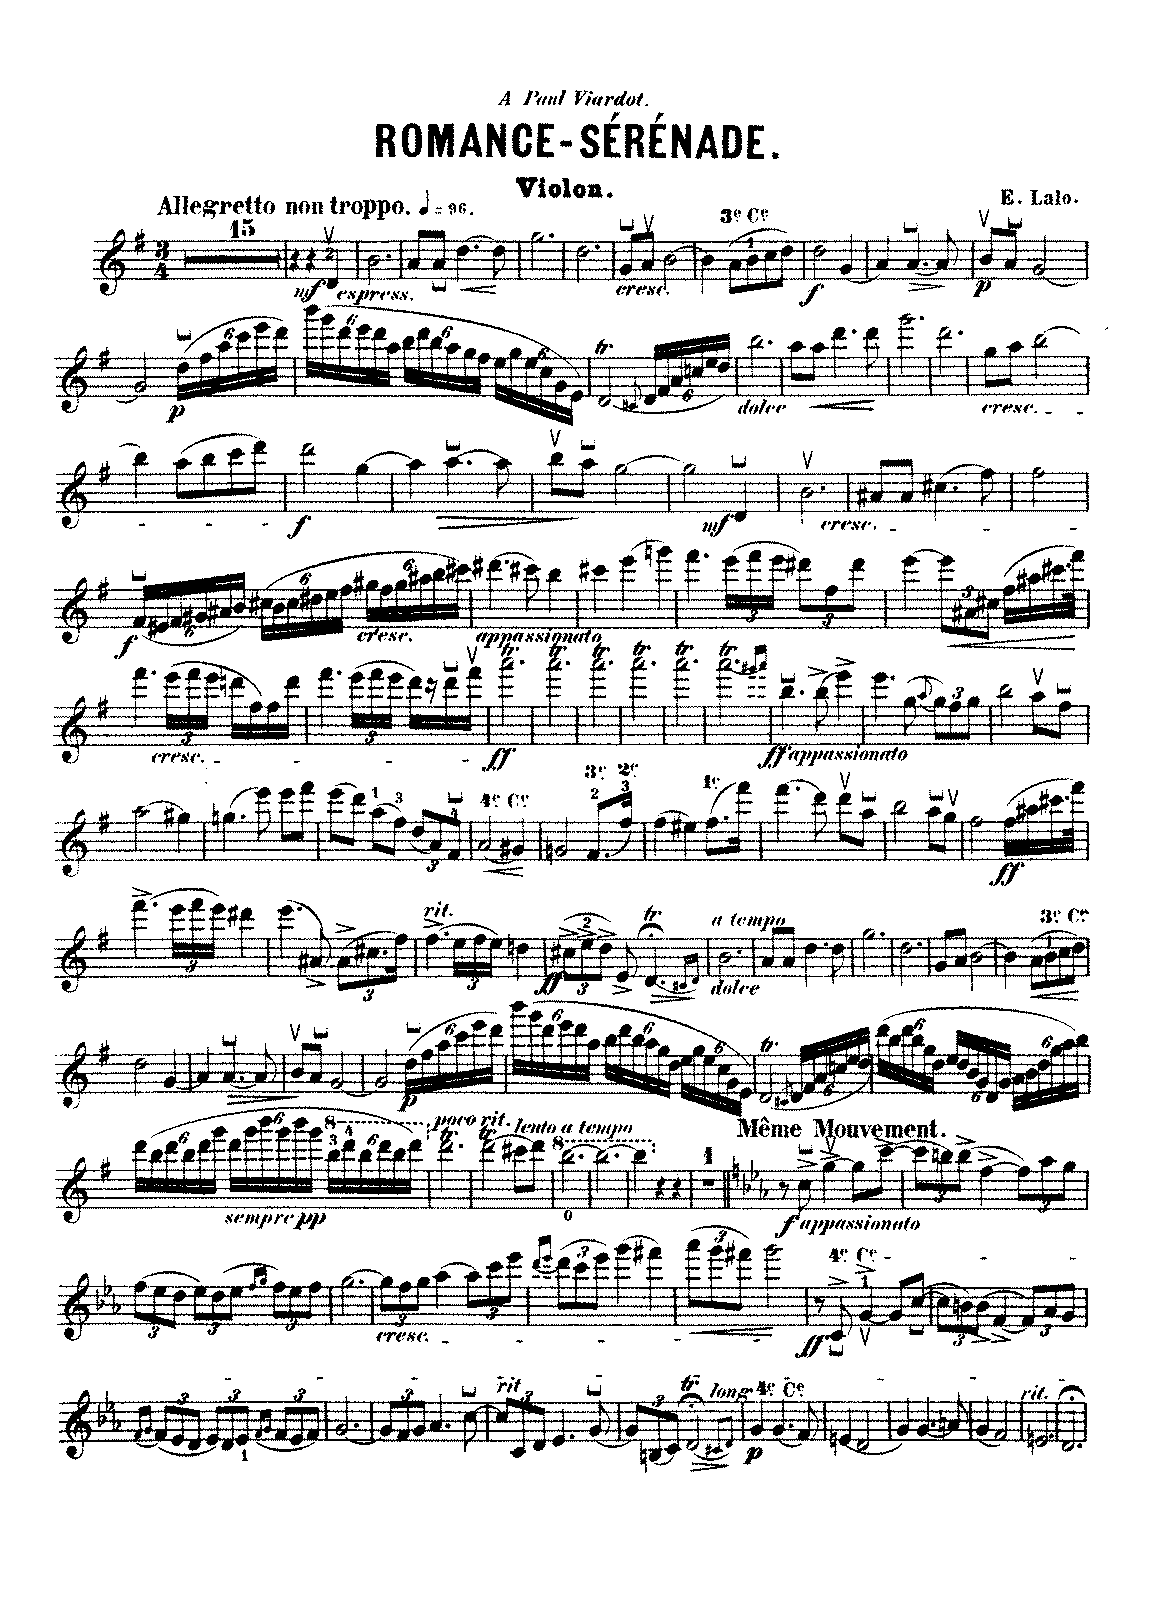 Lalo - Romance-Sérénade (violin and piano).pdf